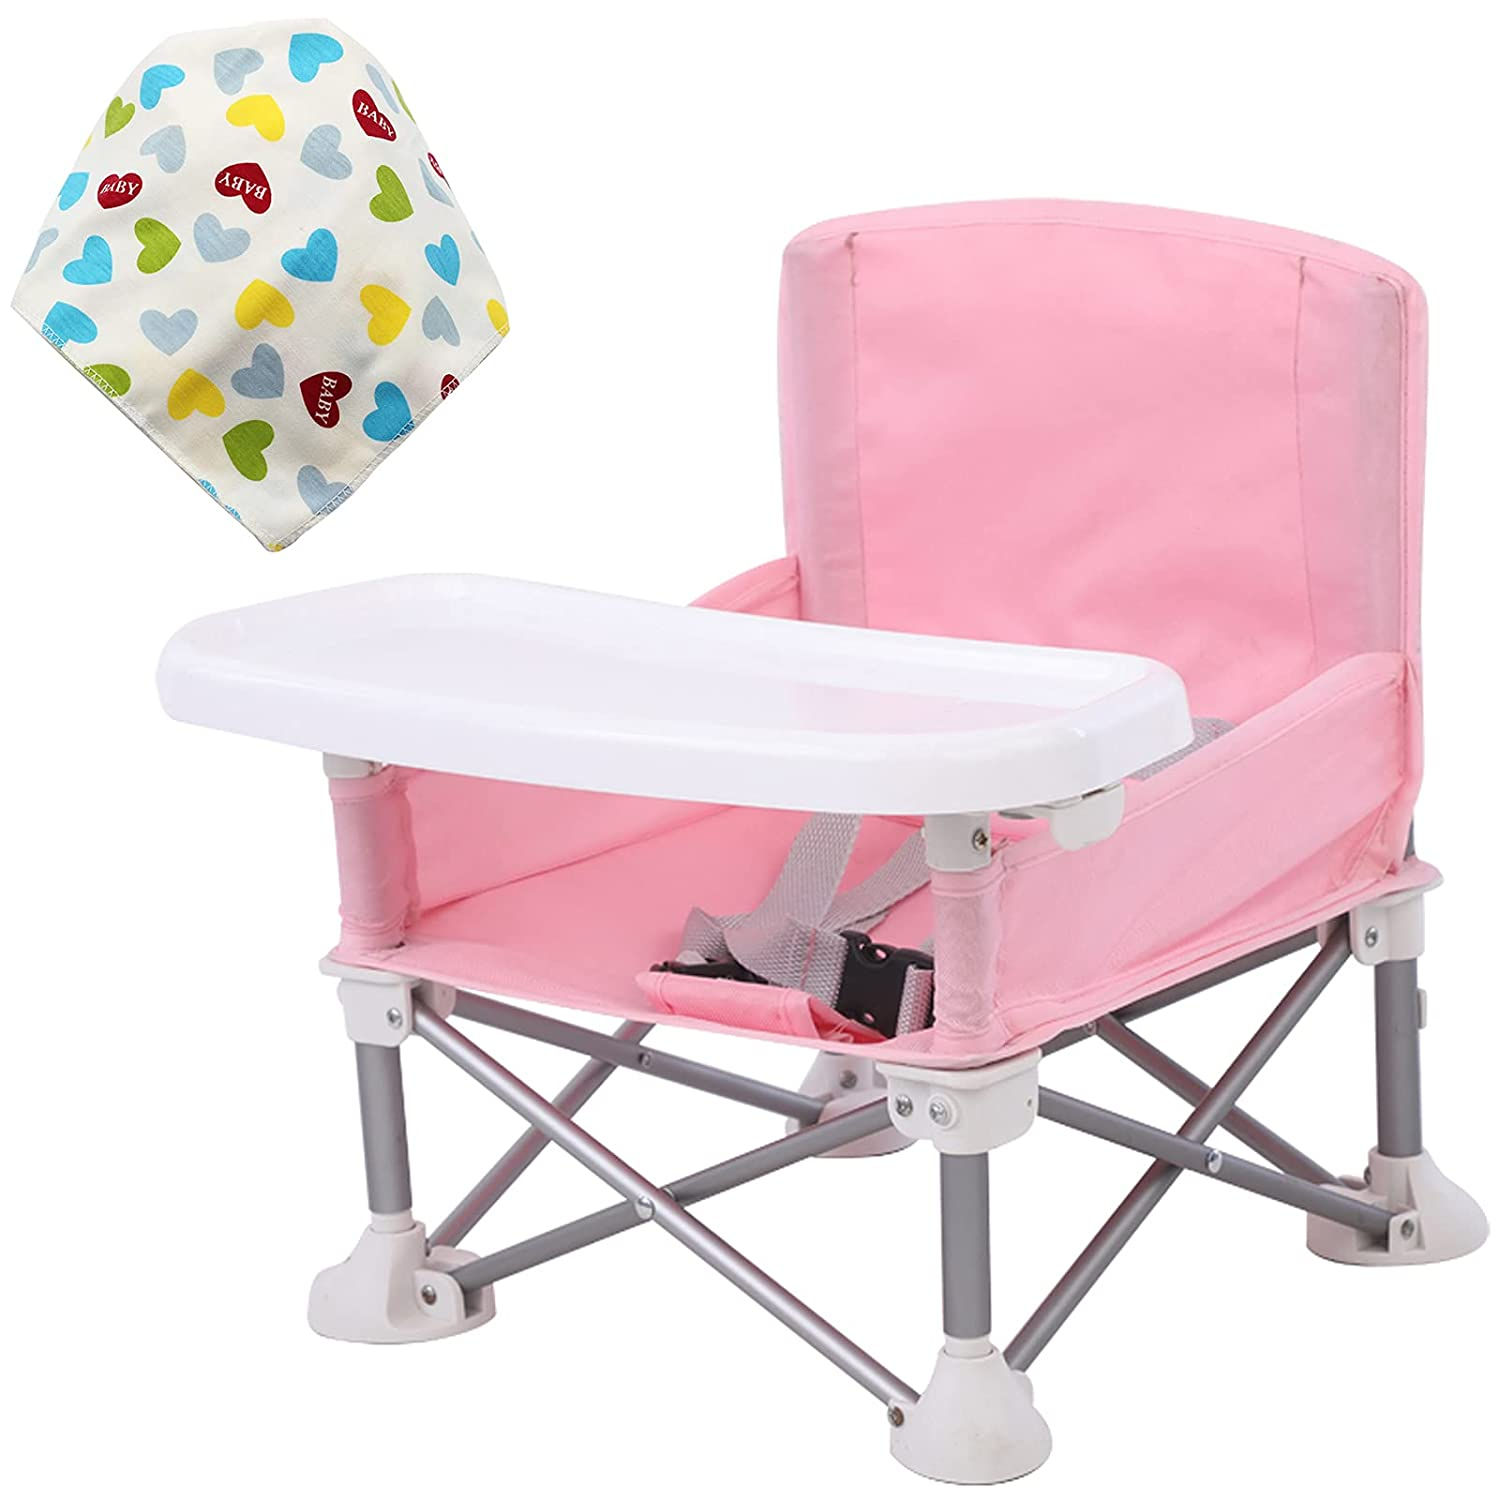 Children's Baby Dining Chair Foldable seat with and Out Popular brand in Las Vegas Mall the world Tray Bag